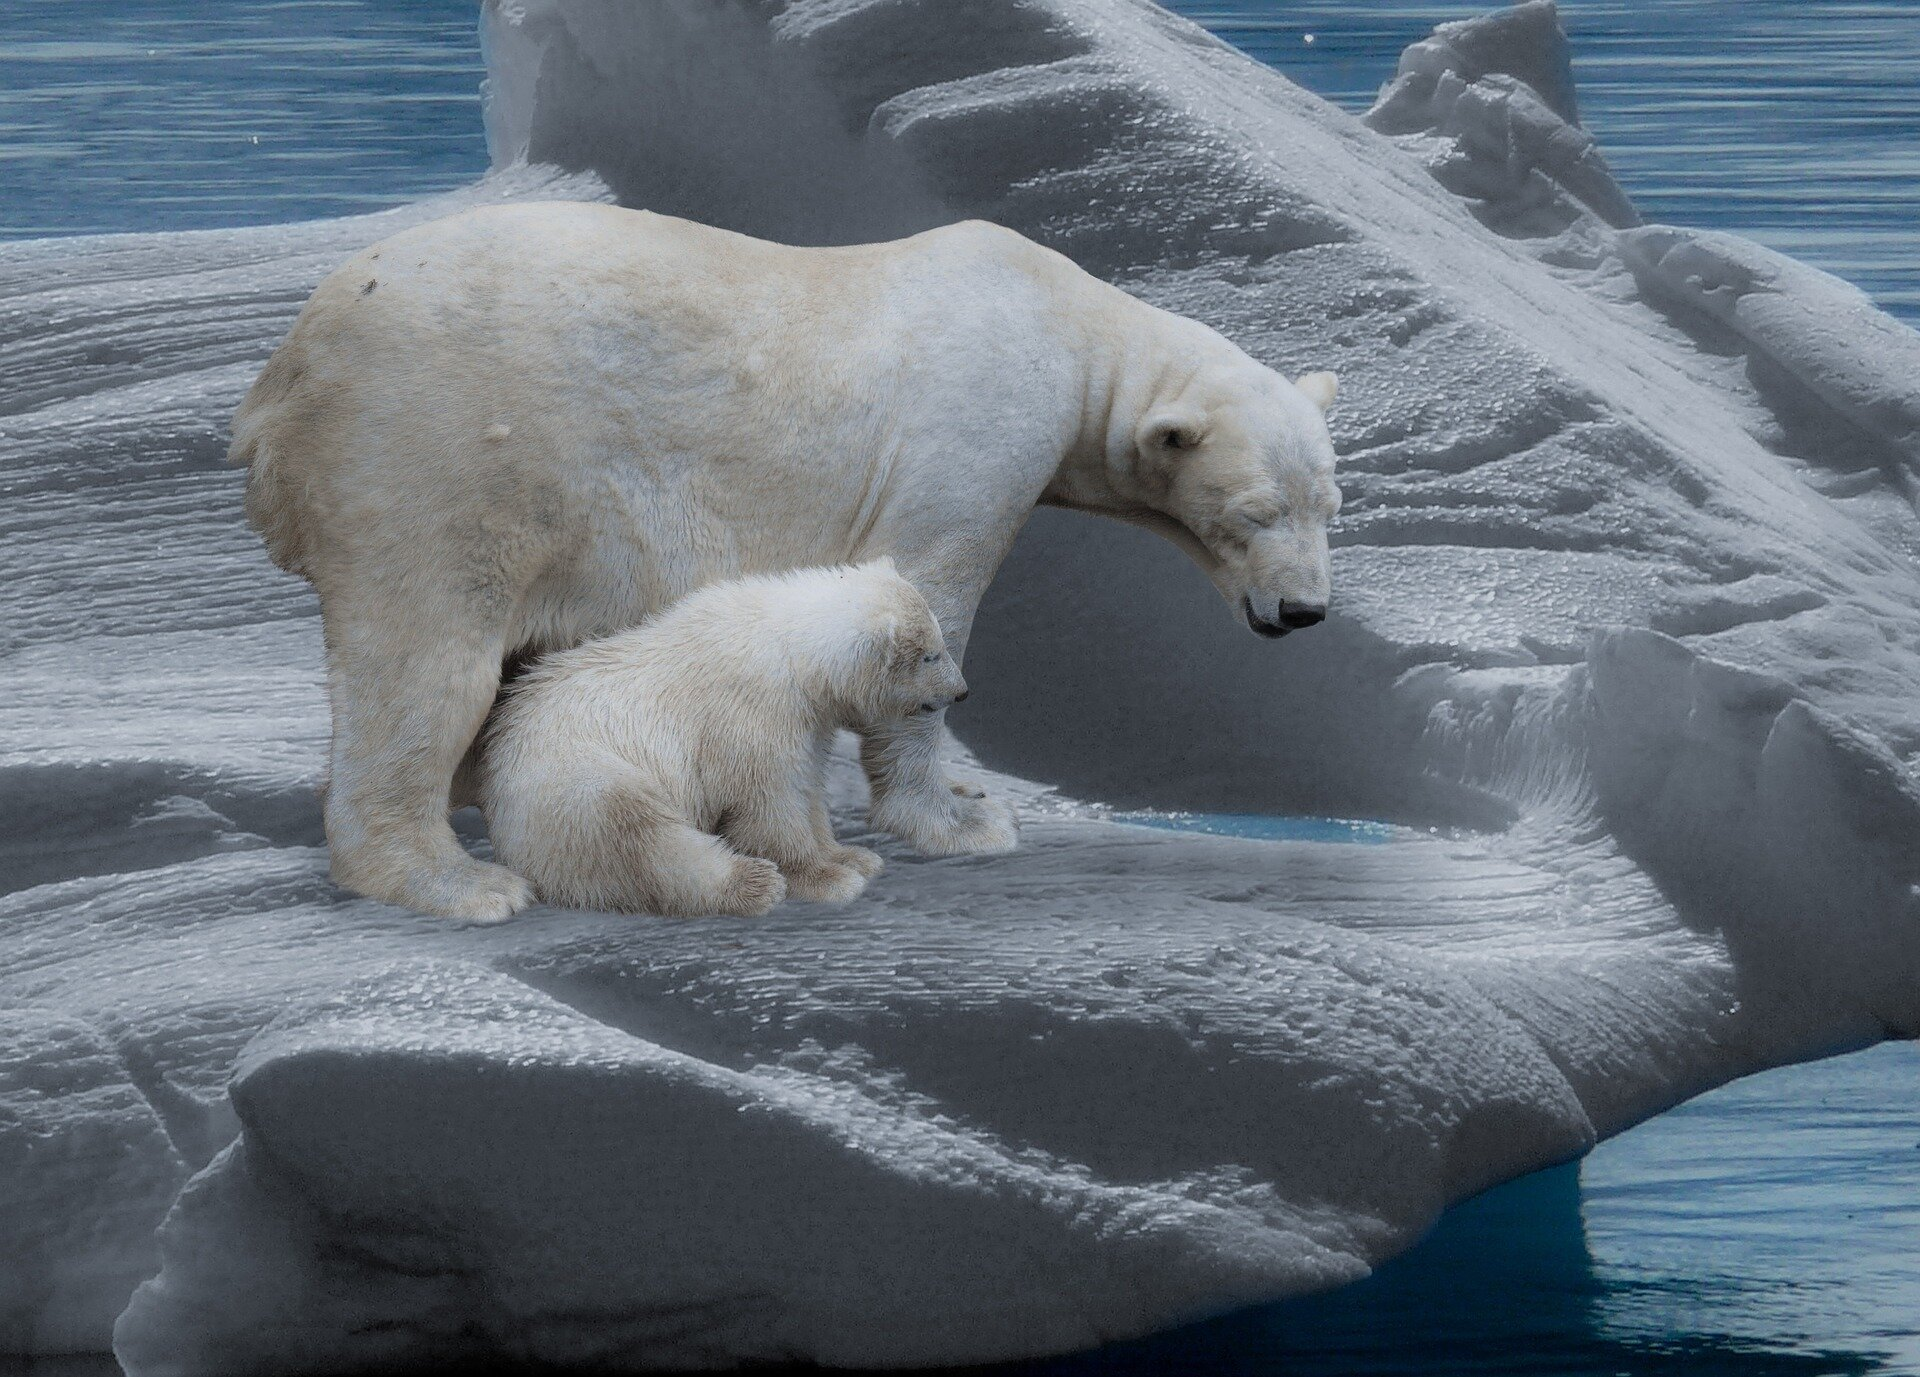 Shrinking sea ice is creating an ecological trap for polar bears